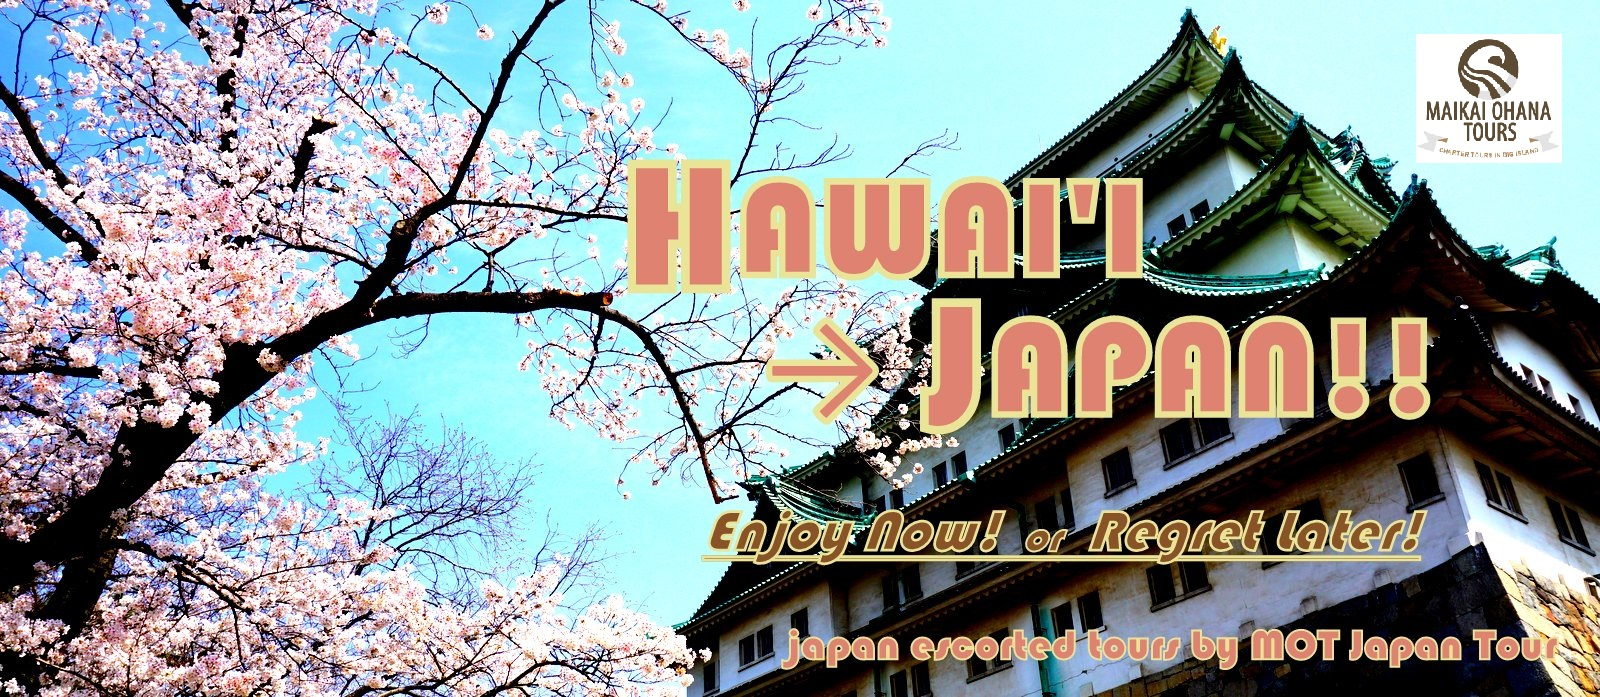 Hawaii Japan escorted tours